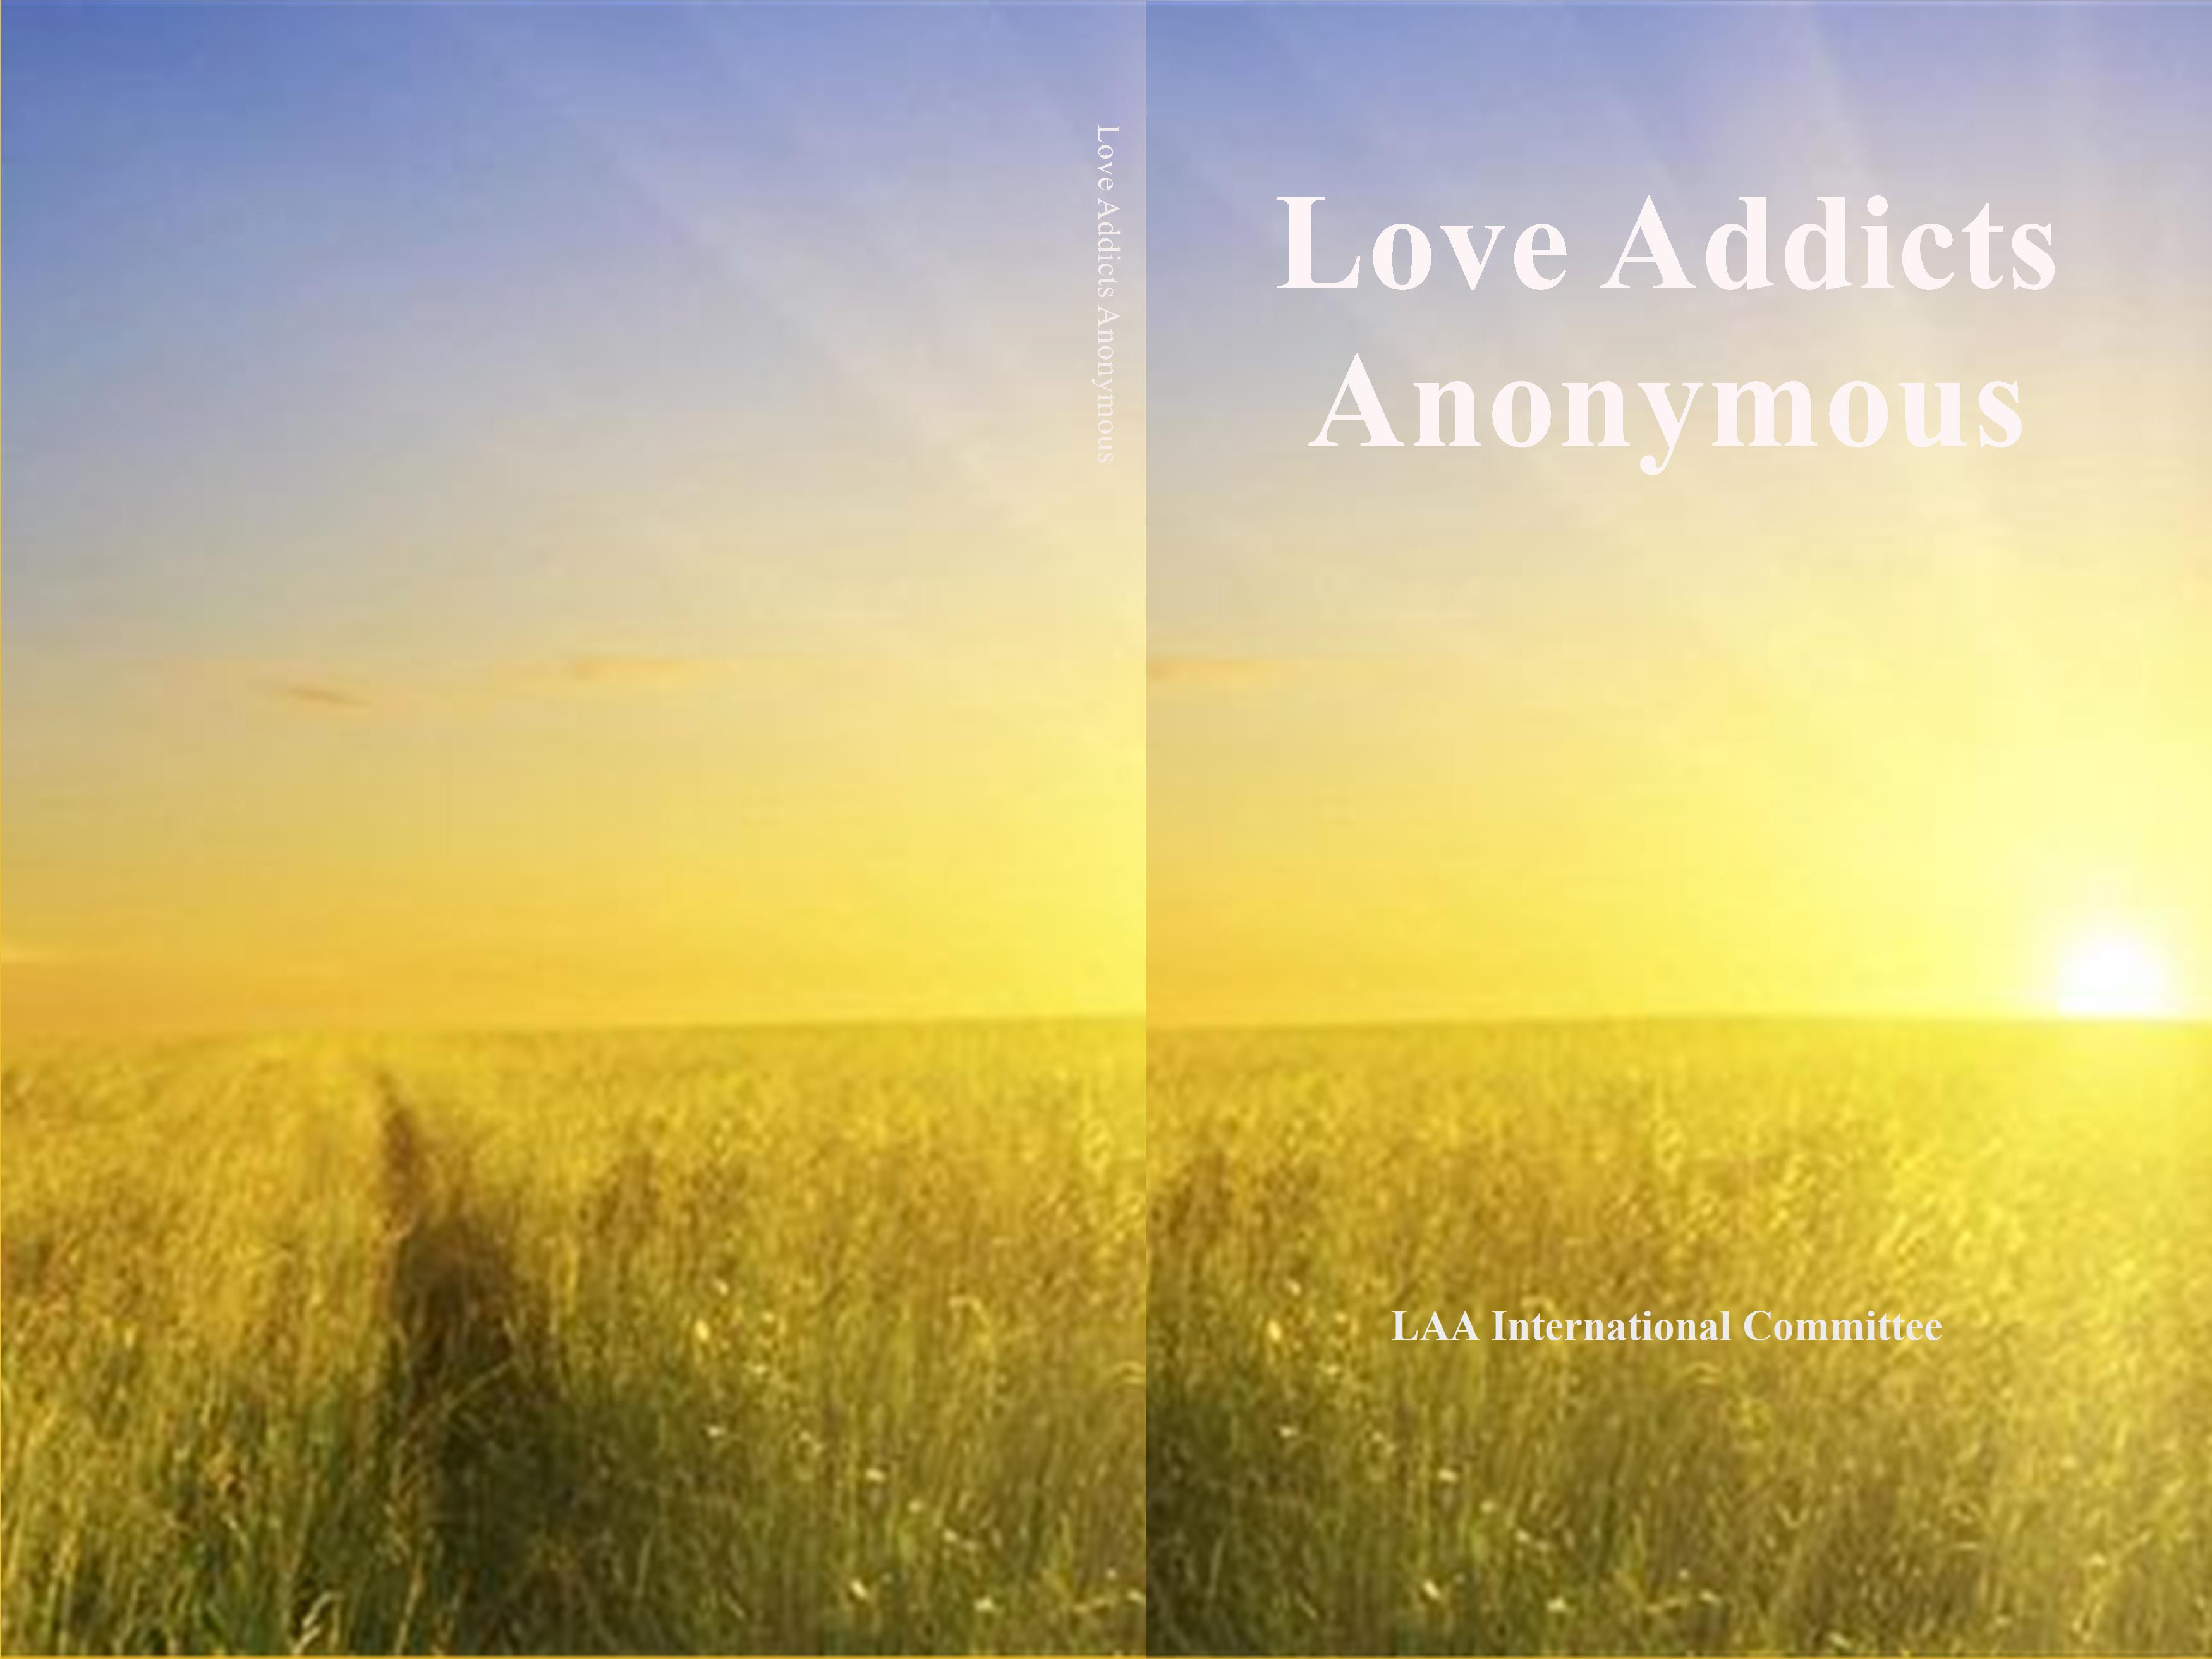 Love Addicts Anonymous cover image